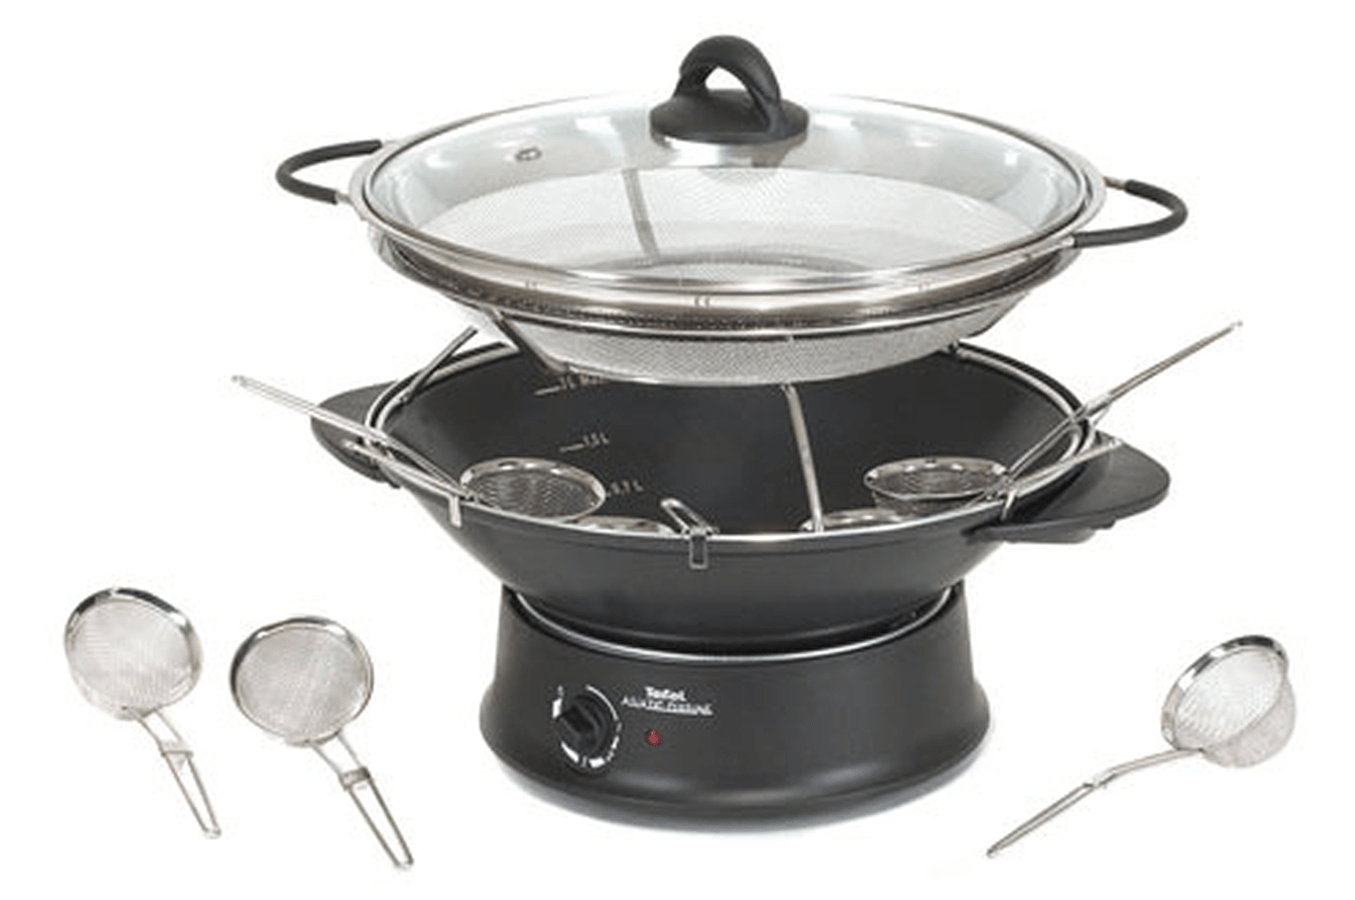 Ensemble Poele Induction Prix Wok Tefal